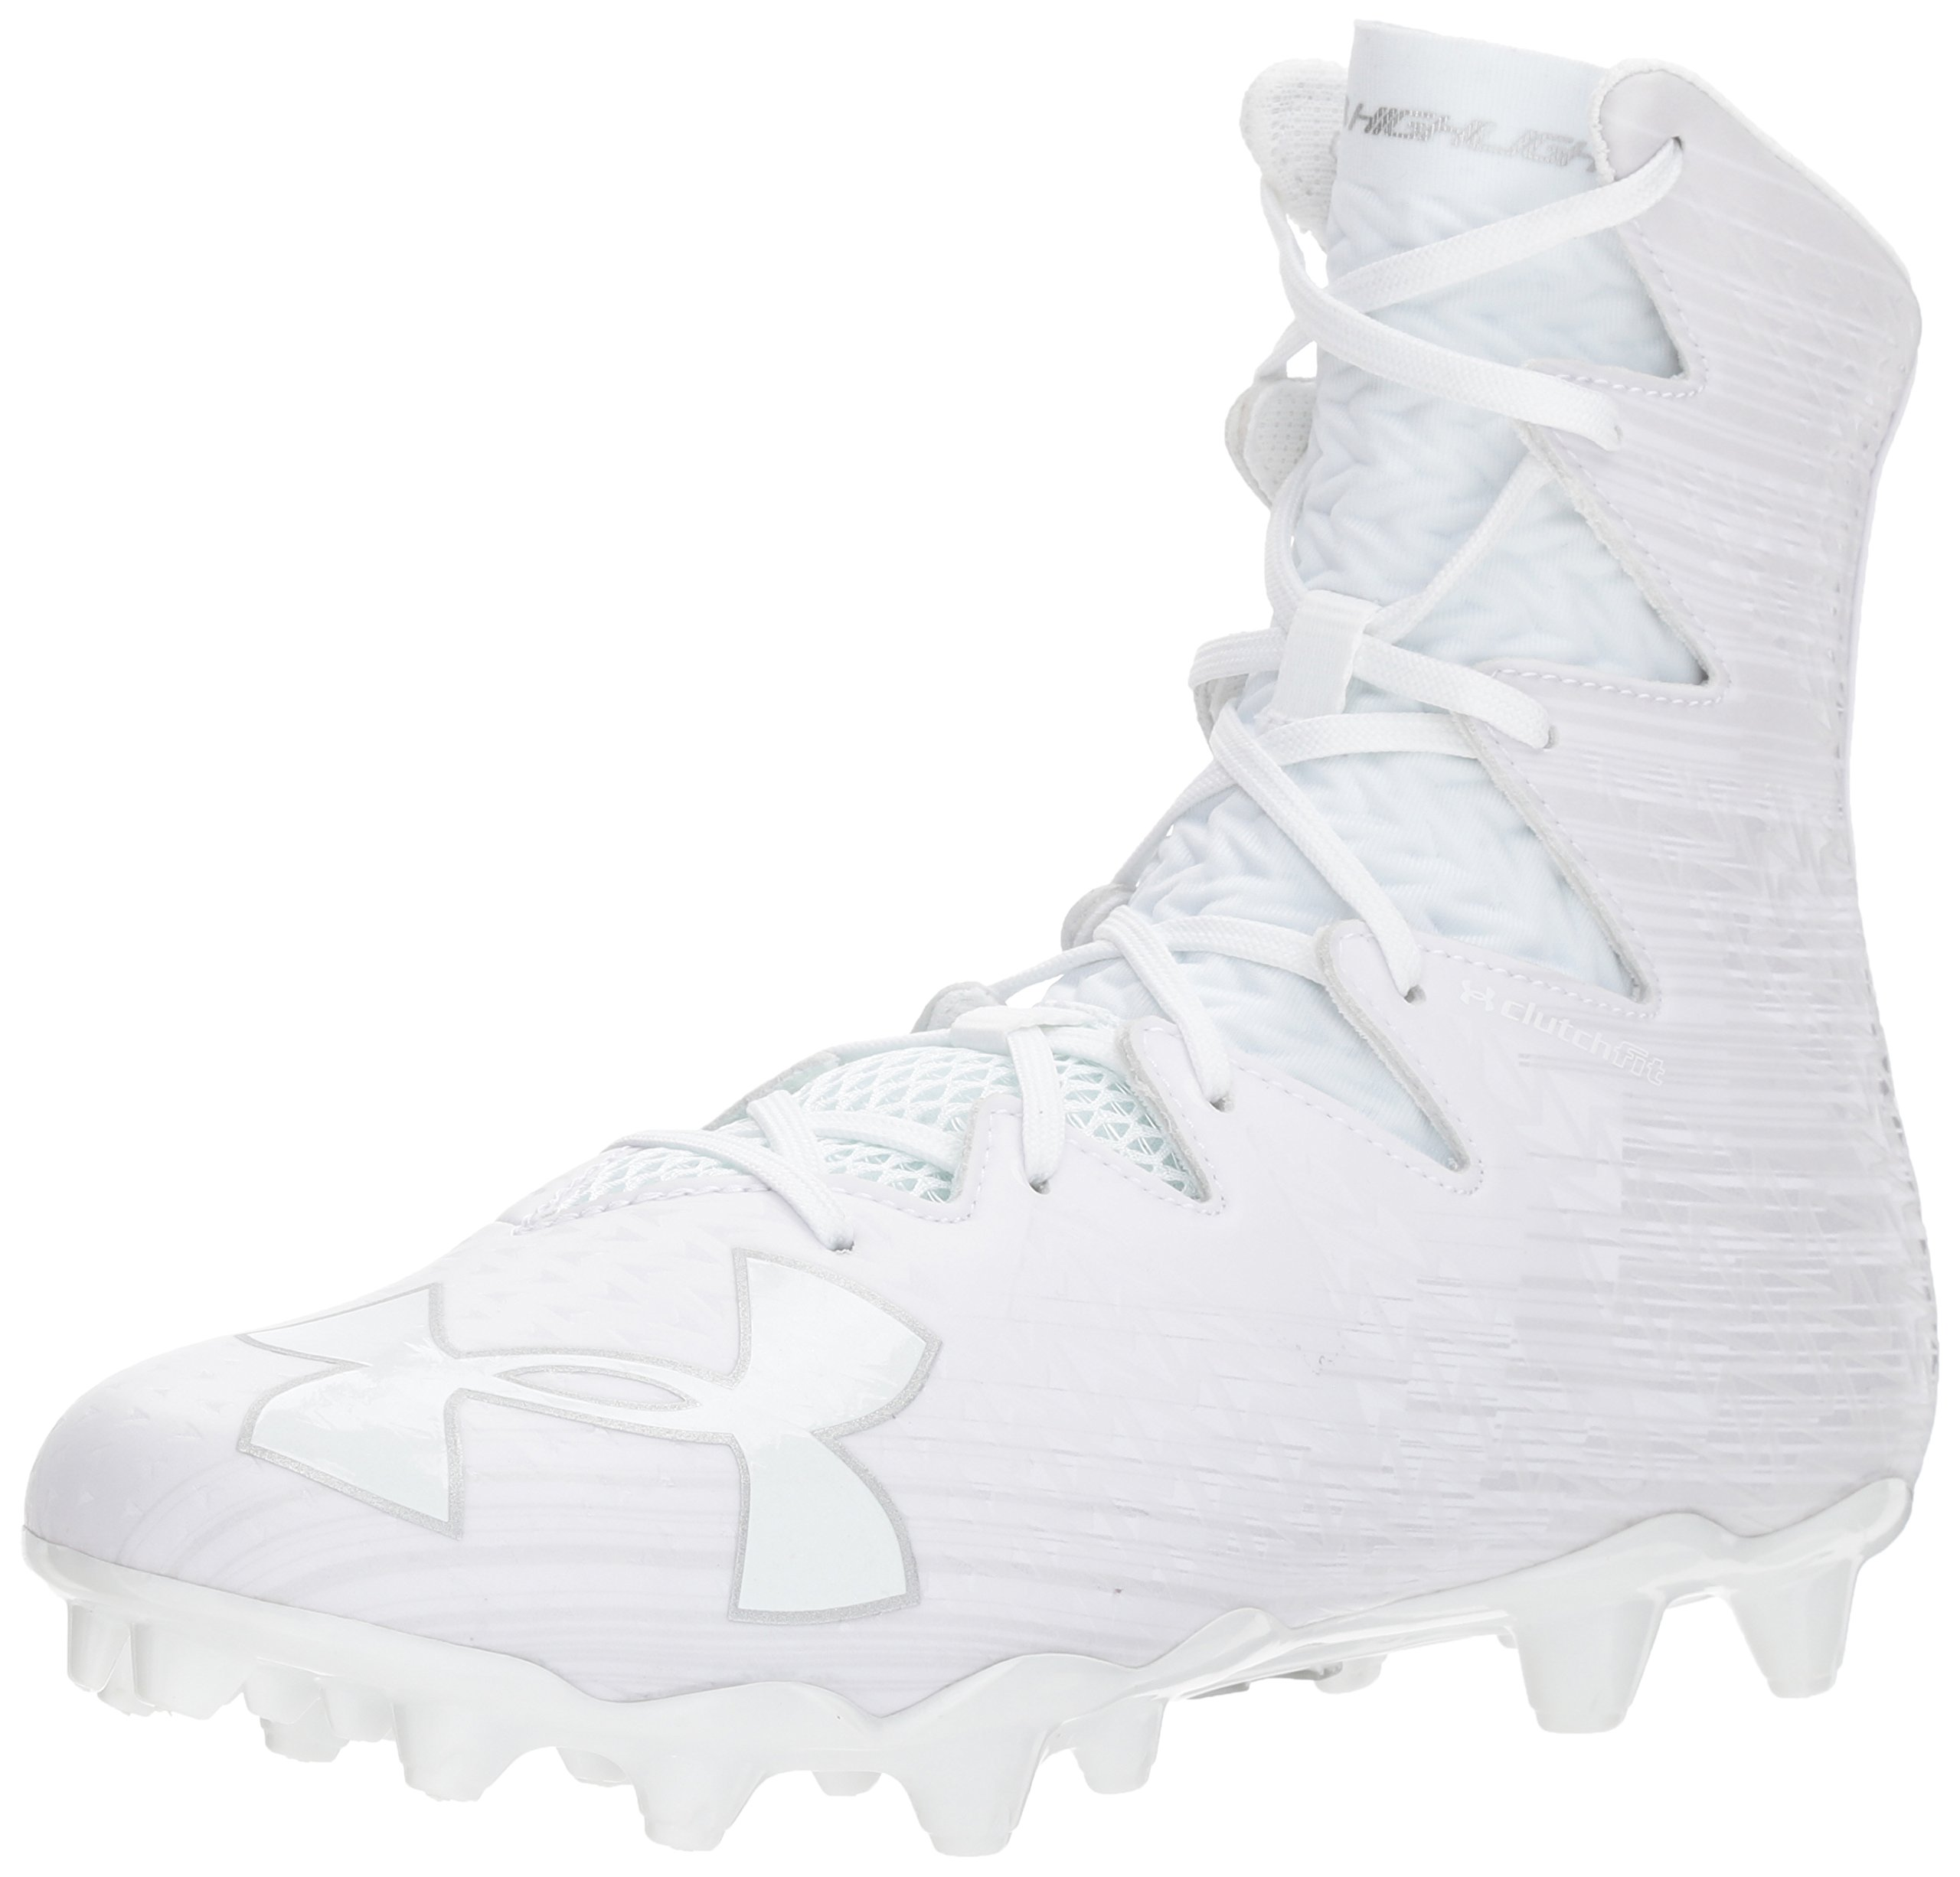 Under Armour Men's Highlight M.C. Lacrosse Shoe, White (100)/Metallic Silver, 11.5 by Under Armour